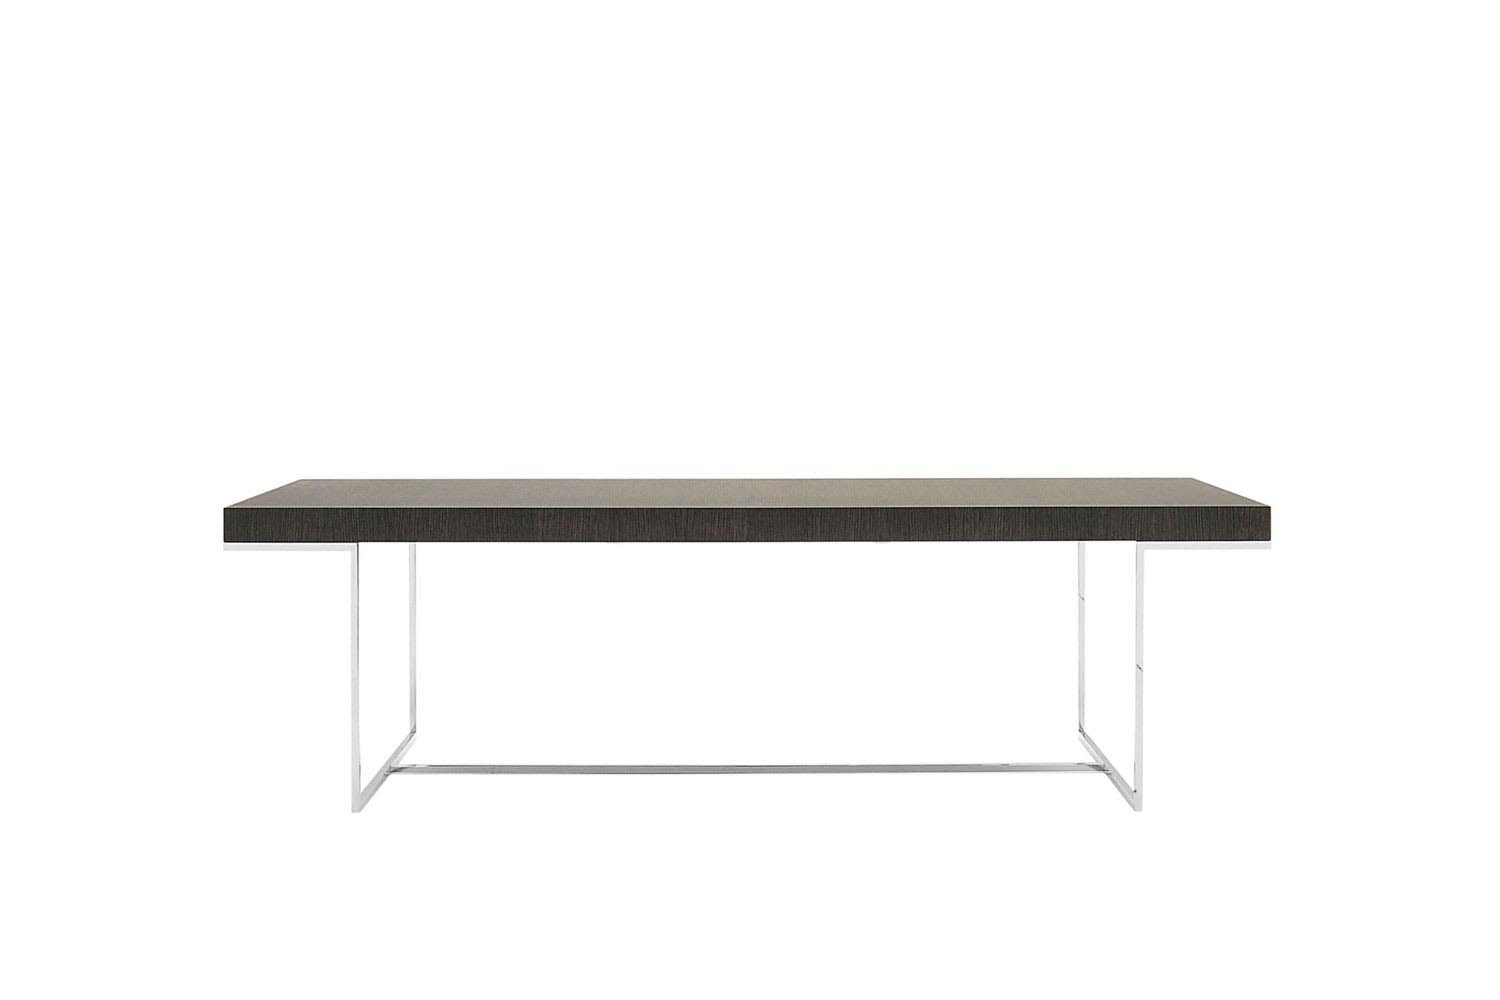 Athos Table by Paolo Piva for B&B Italia